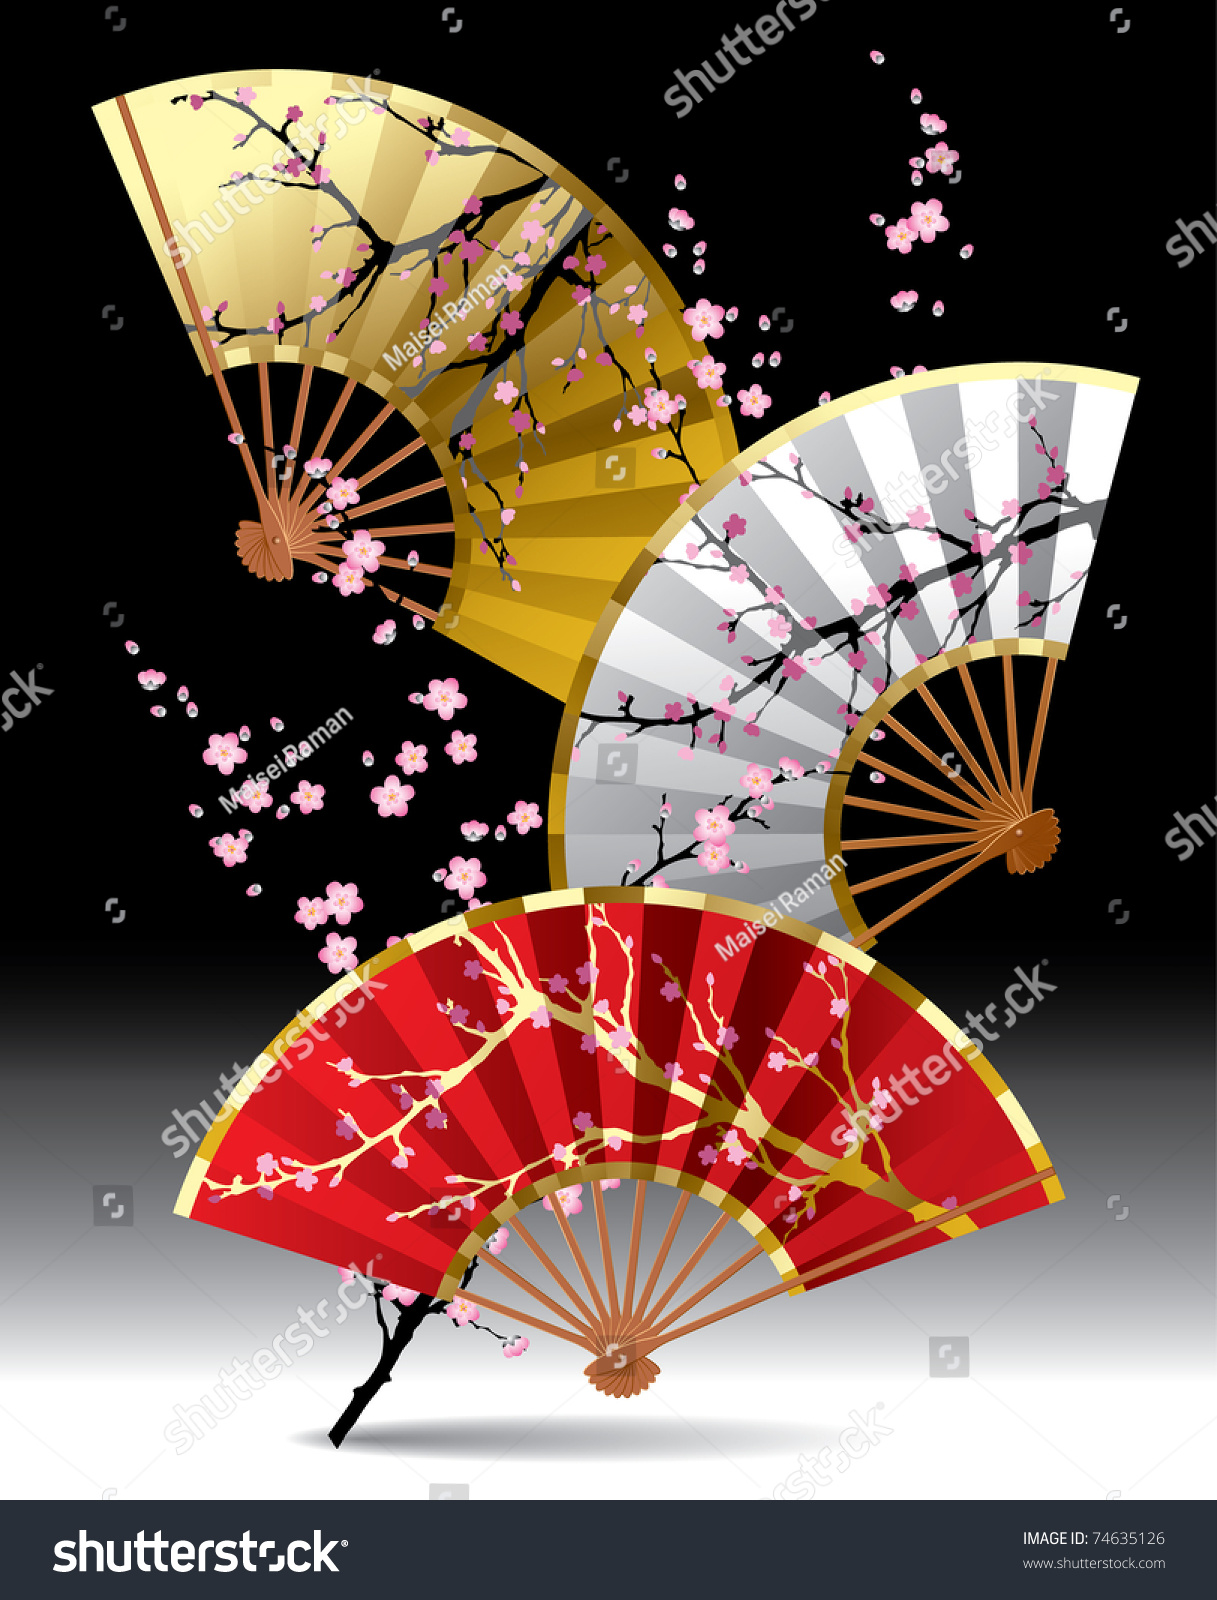 Vector Image Of Three Japanese Fans With A Cherry Blossom